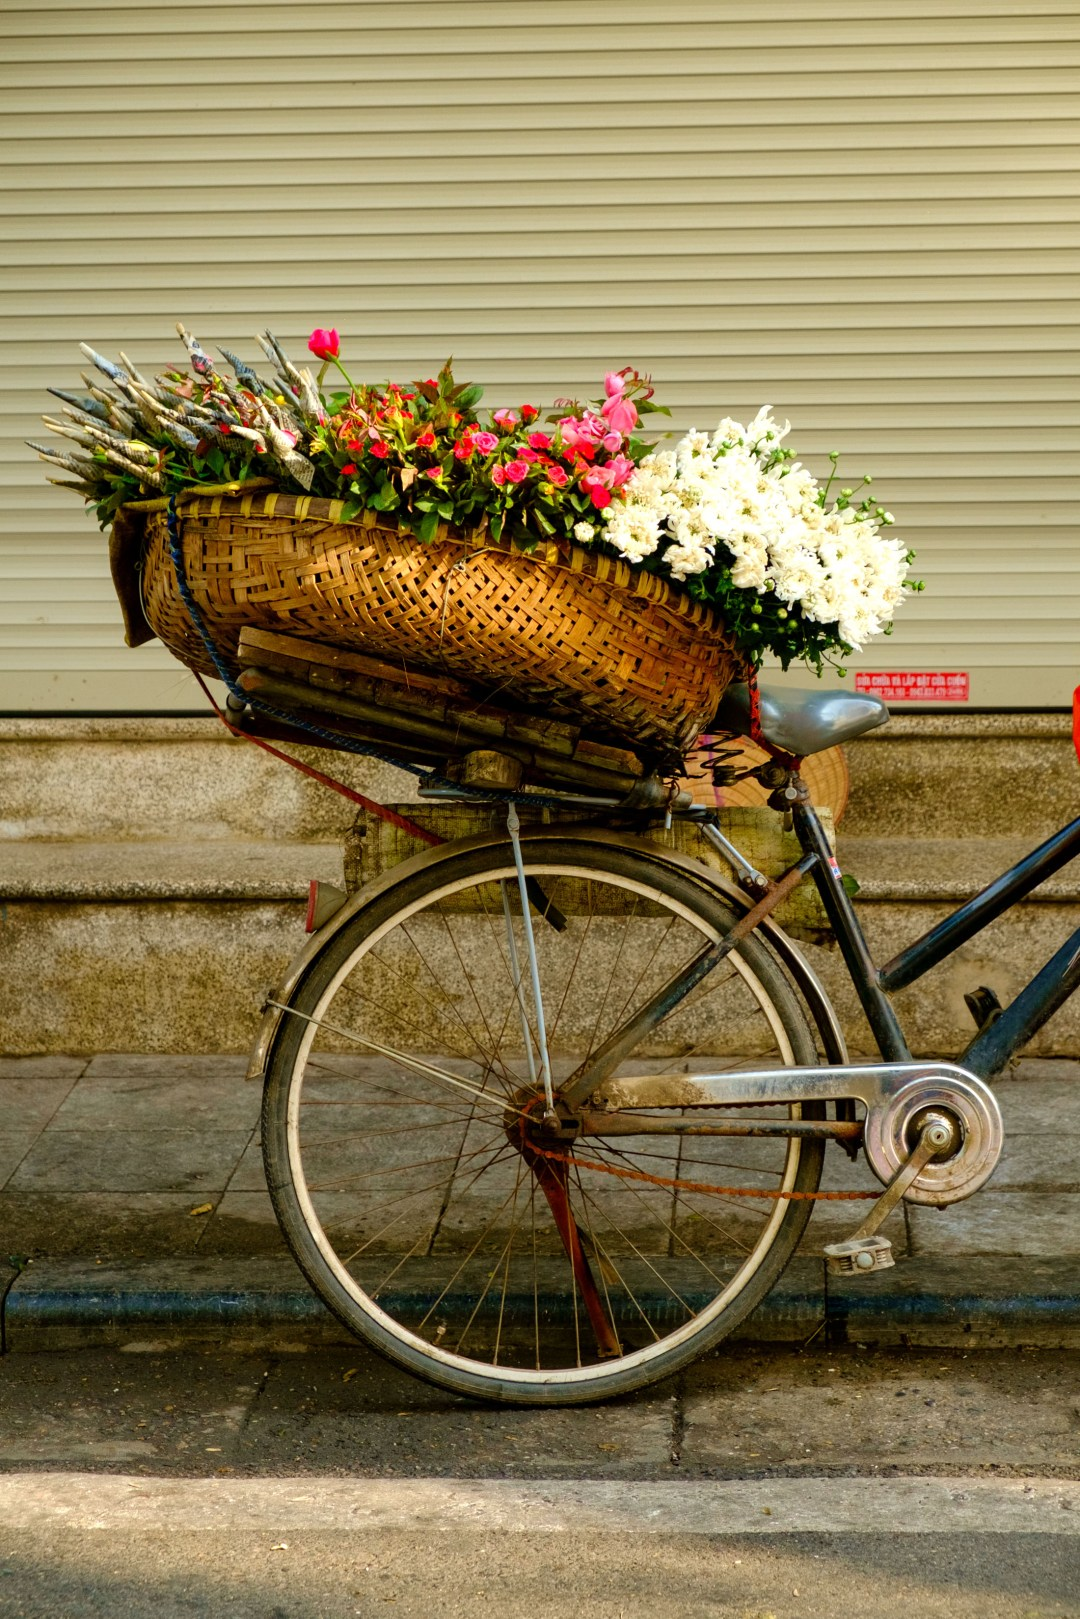 Flowers in a basket on a bicycle - Old French Quarter, Hanoi, Vietnam